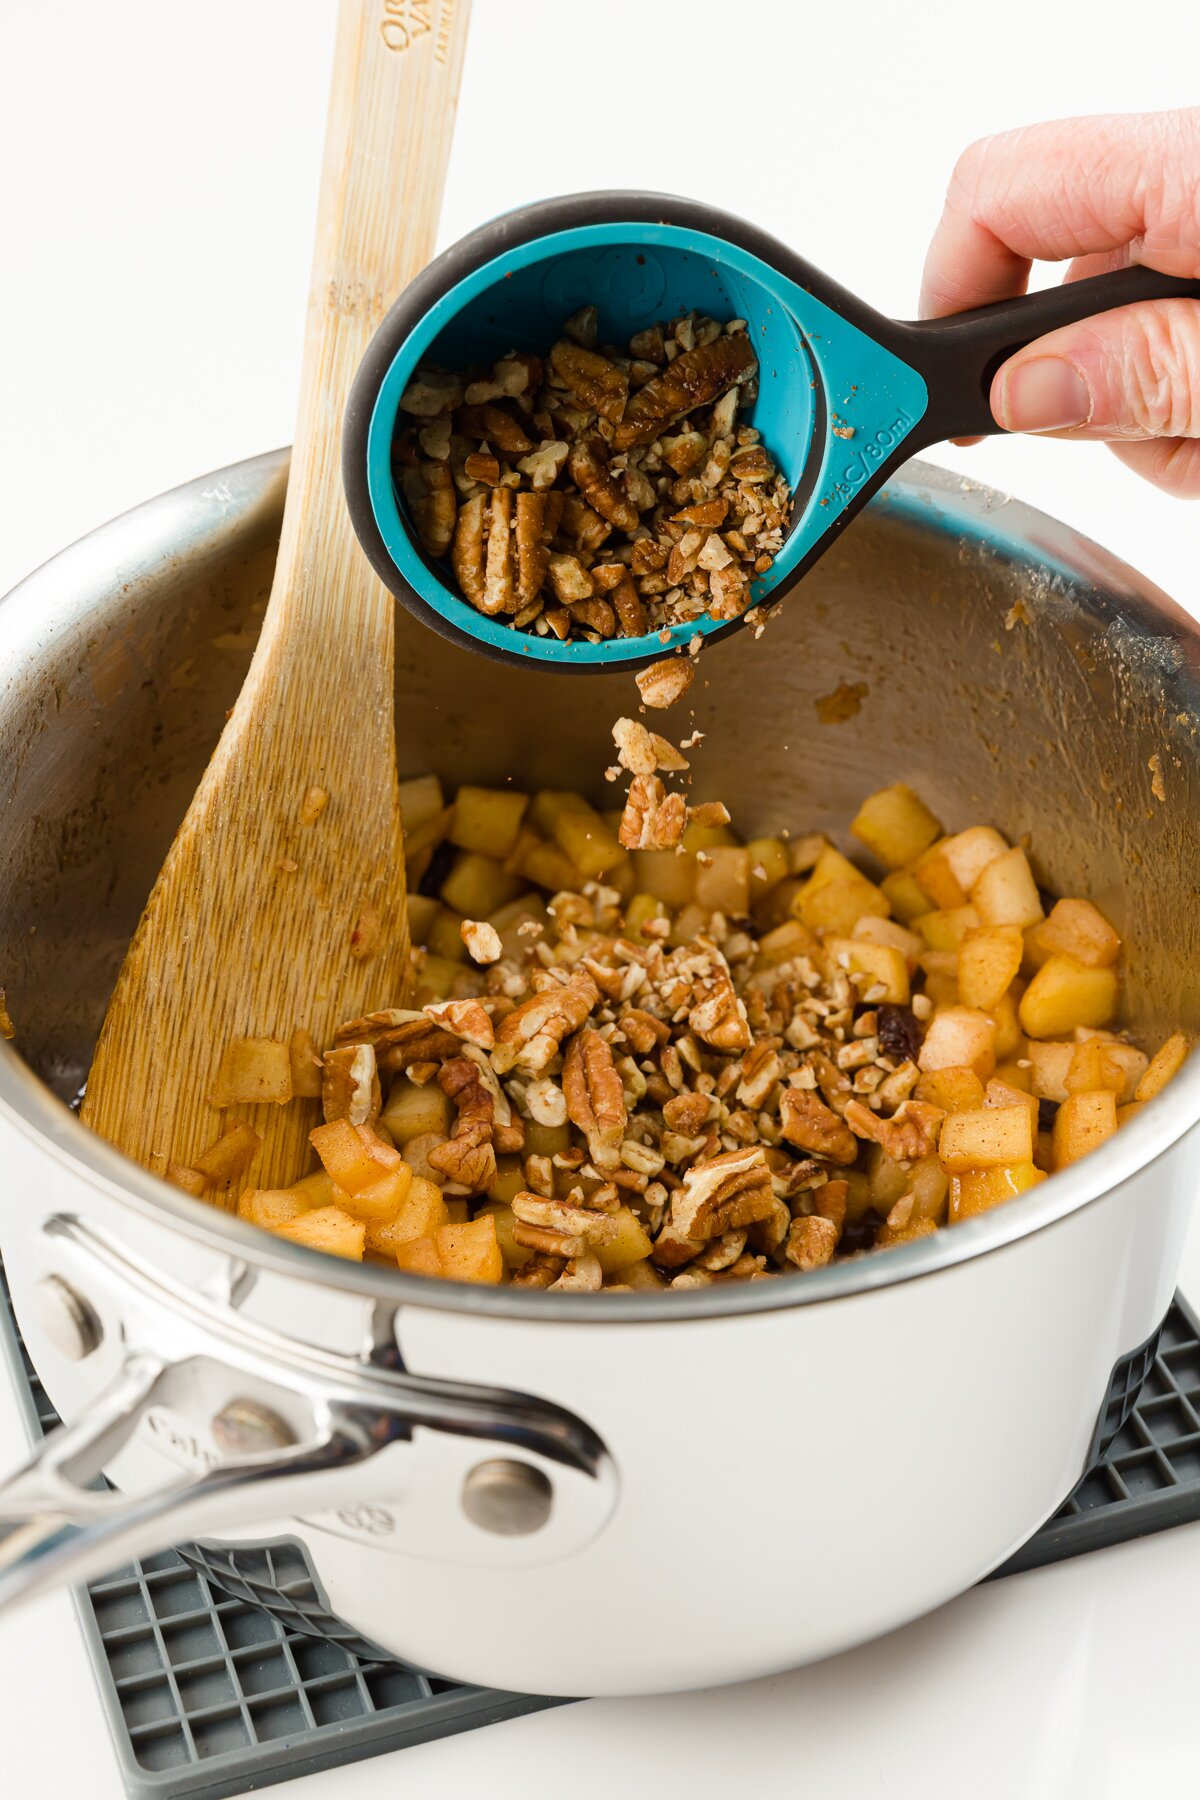 Adding nuts to pot of cooked apples